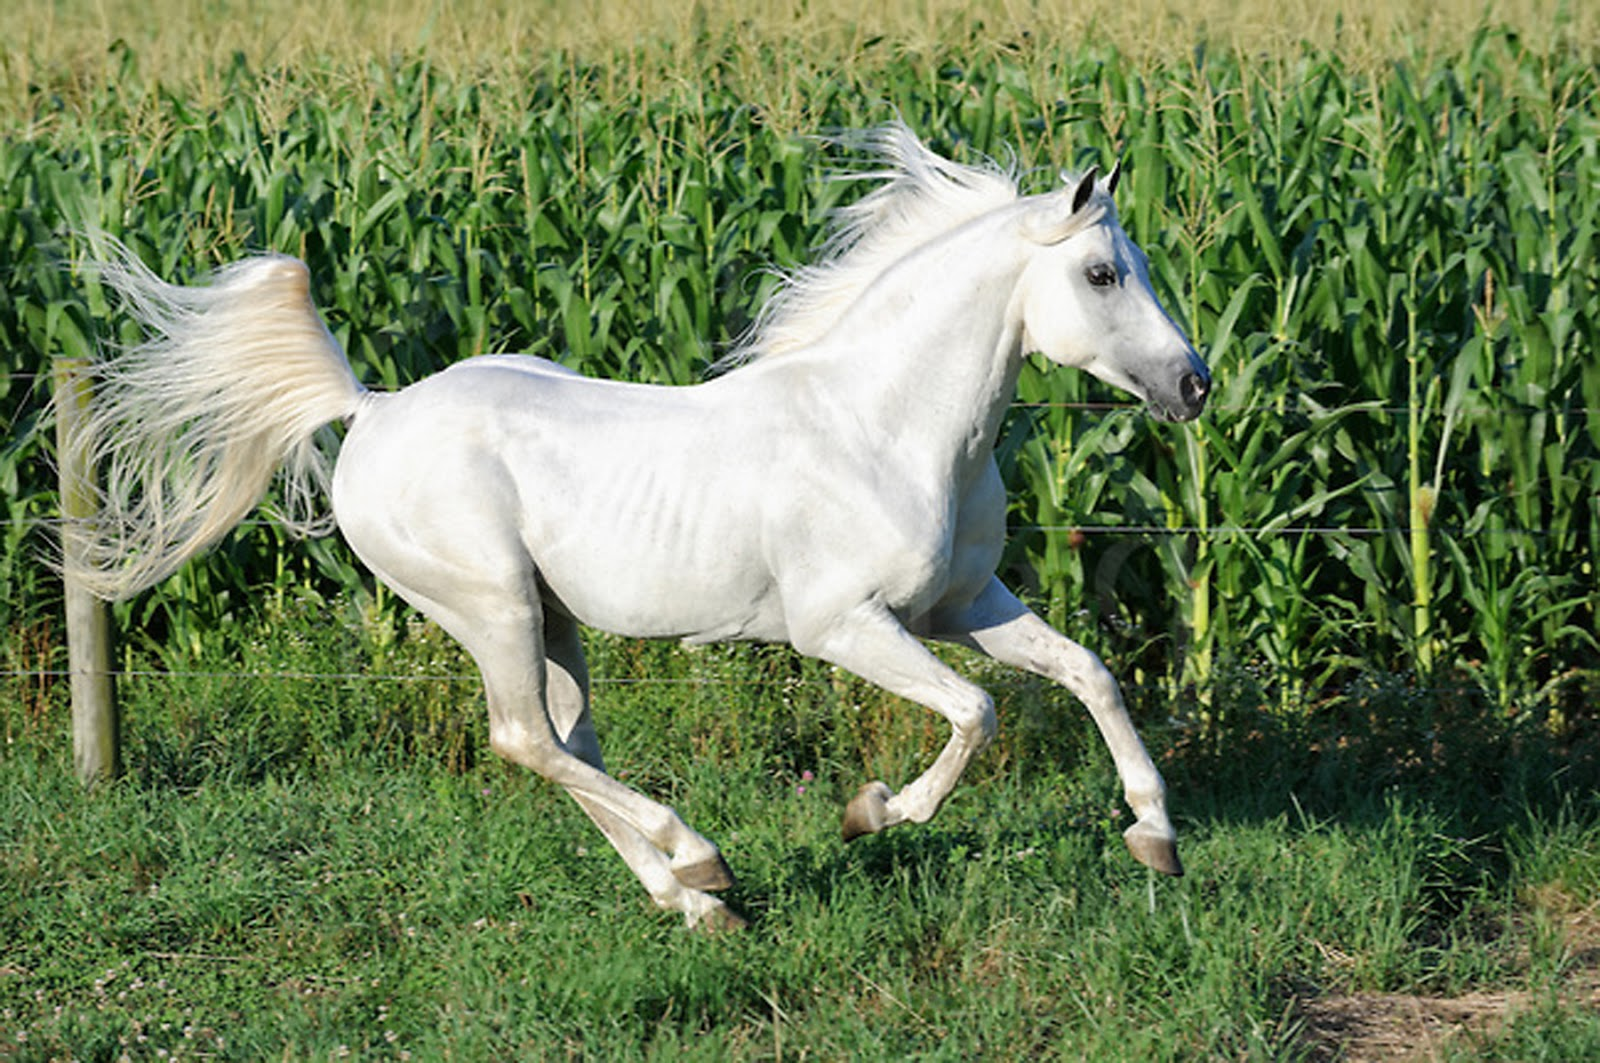 White running horses - photo#9